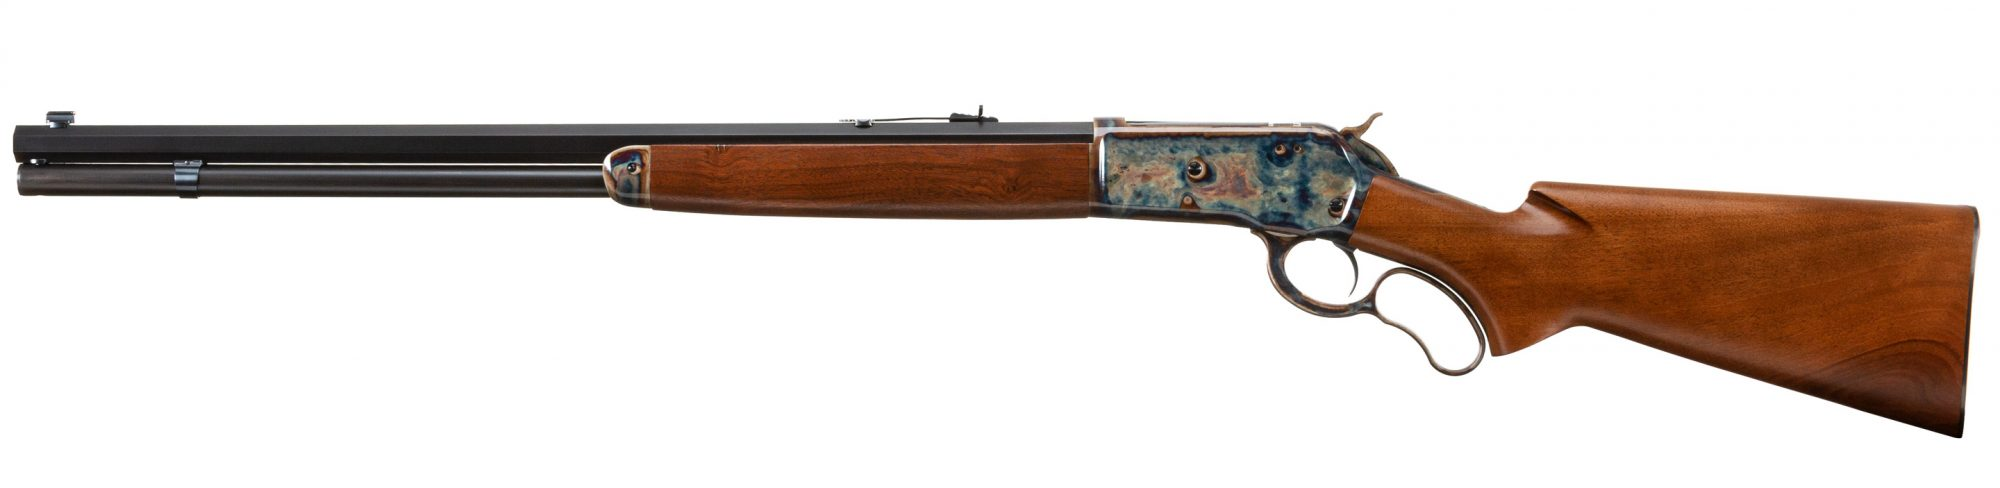 Turnbull Model 71 in .475 Turnbull